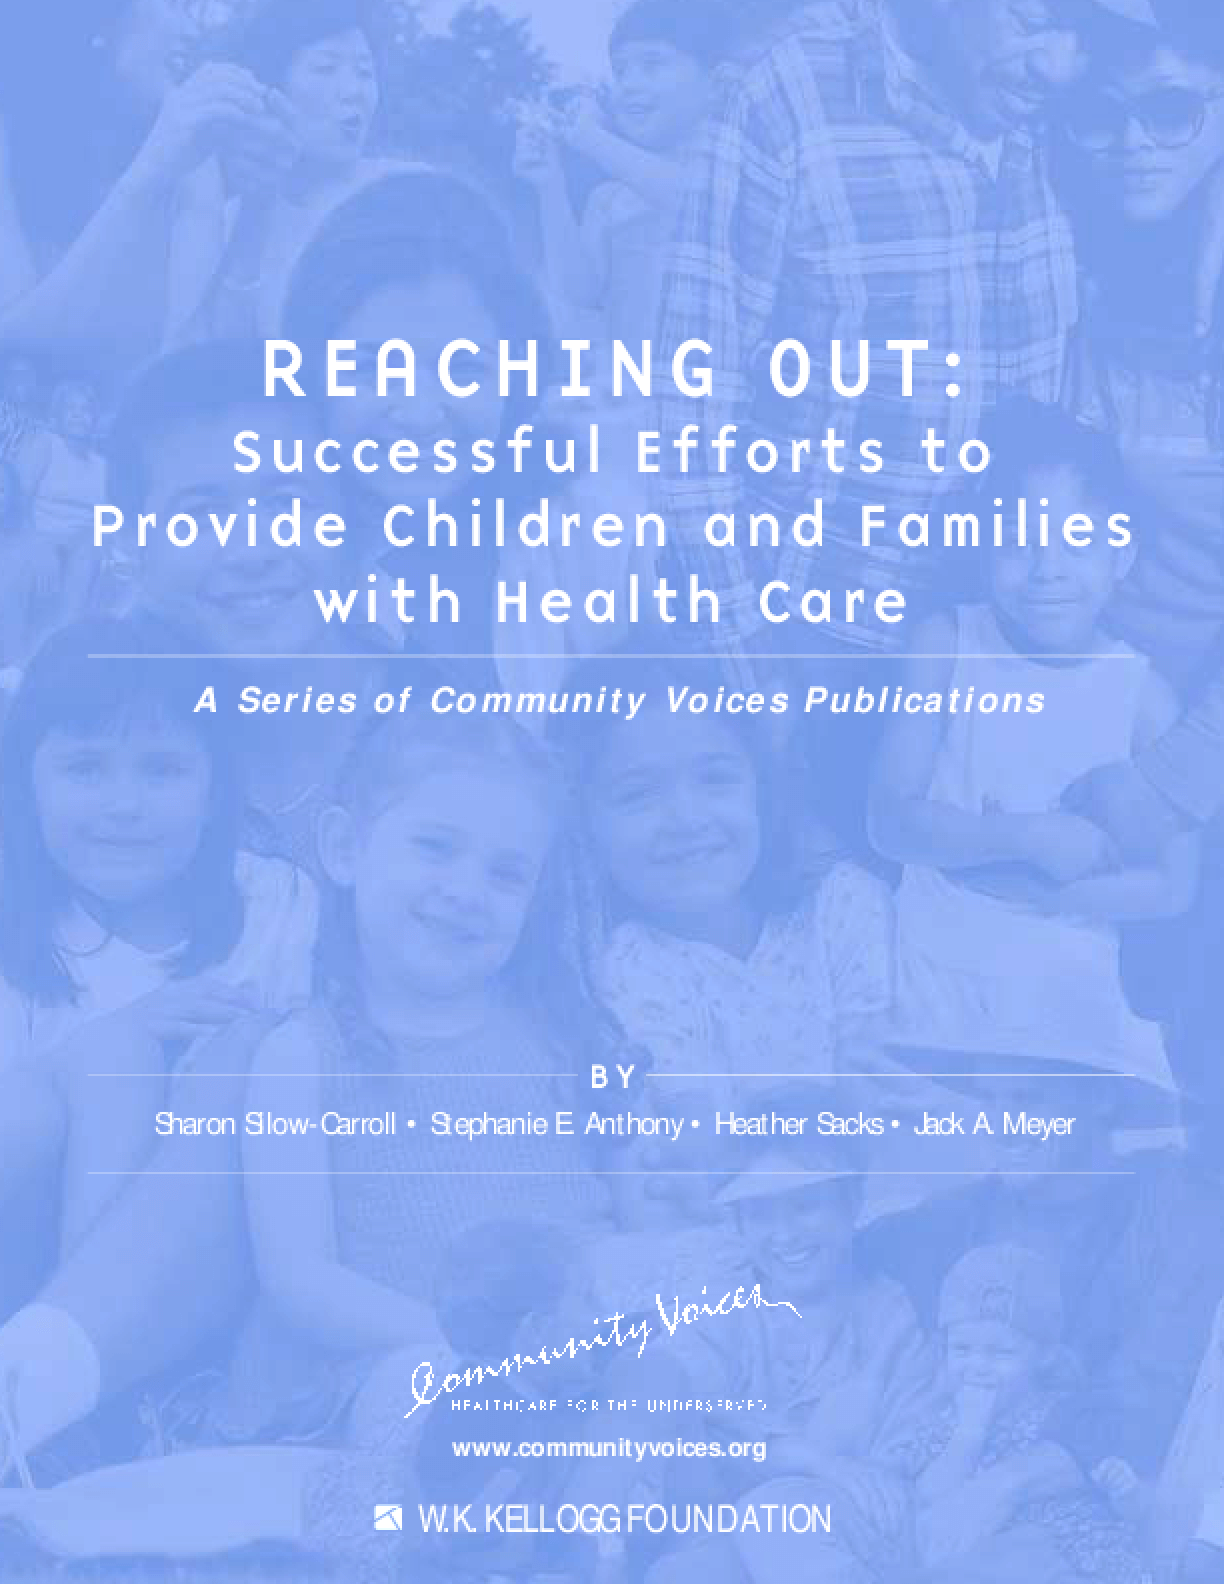 Reaching Out: Successful Efforts to Provide Children and Families With Health Care